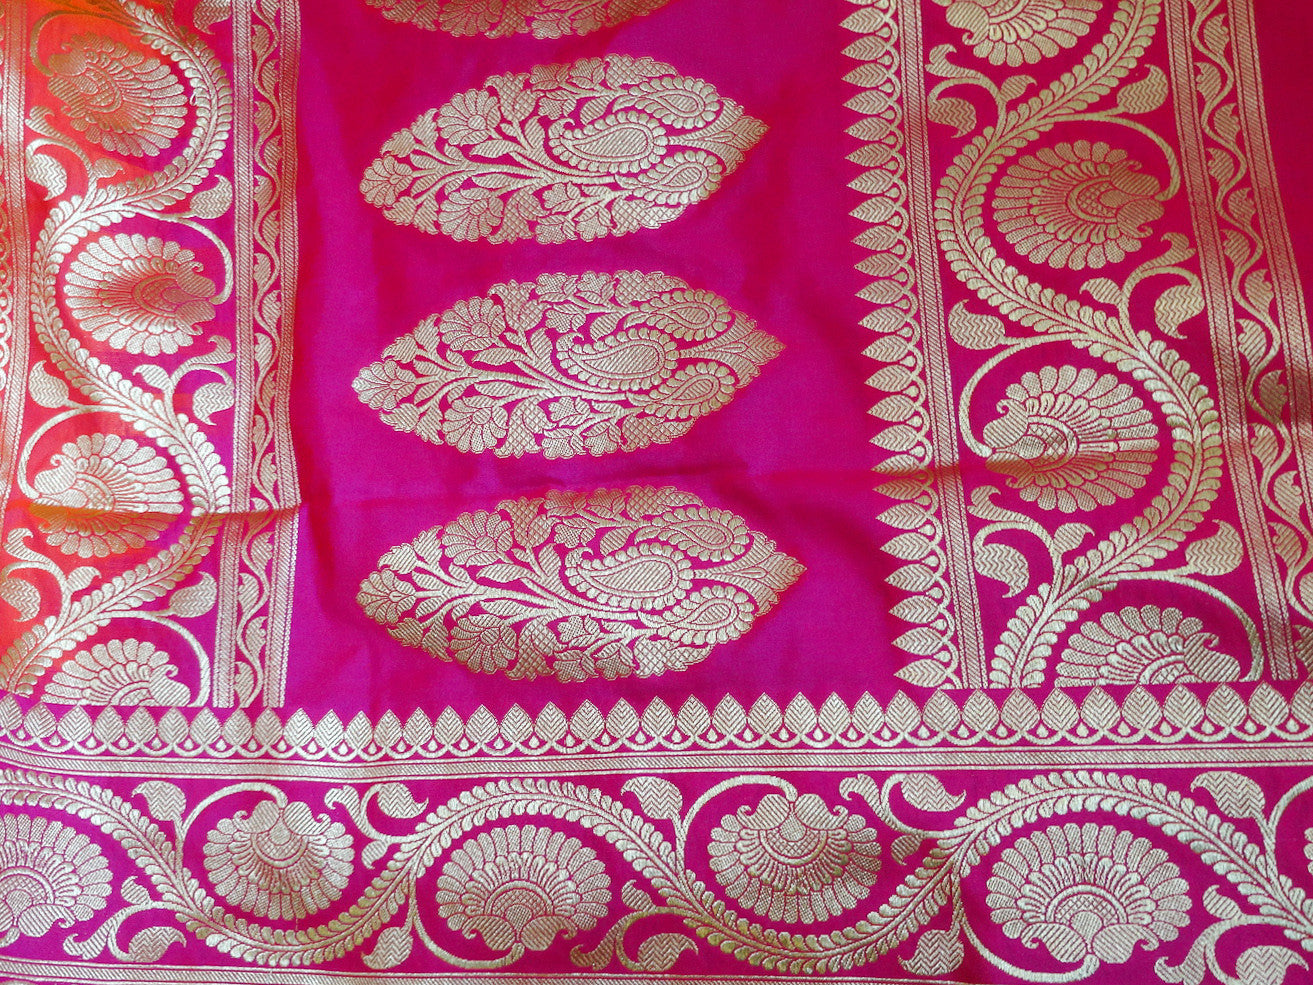 Banarasee Handwoven Georgette Silk Saree With Big Buta and Floral Border Design-Peach(Dual Tone)